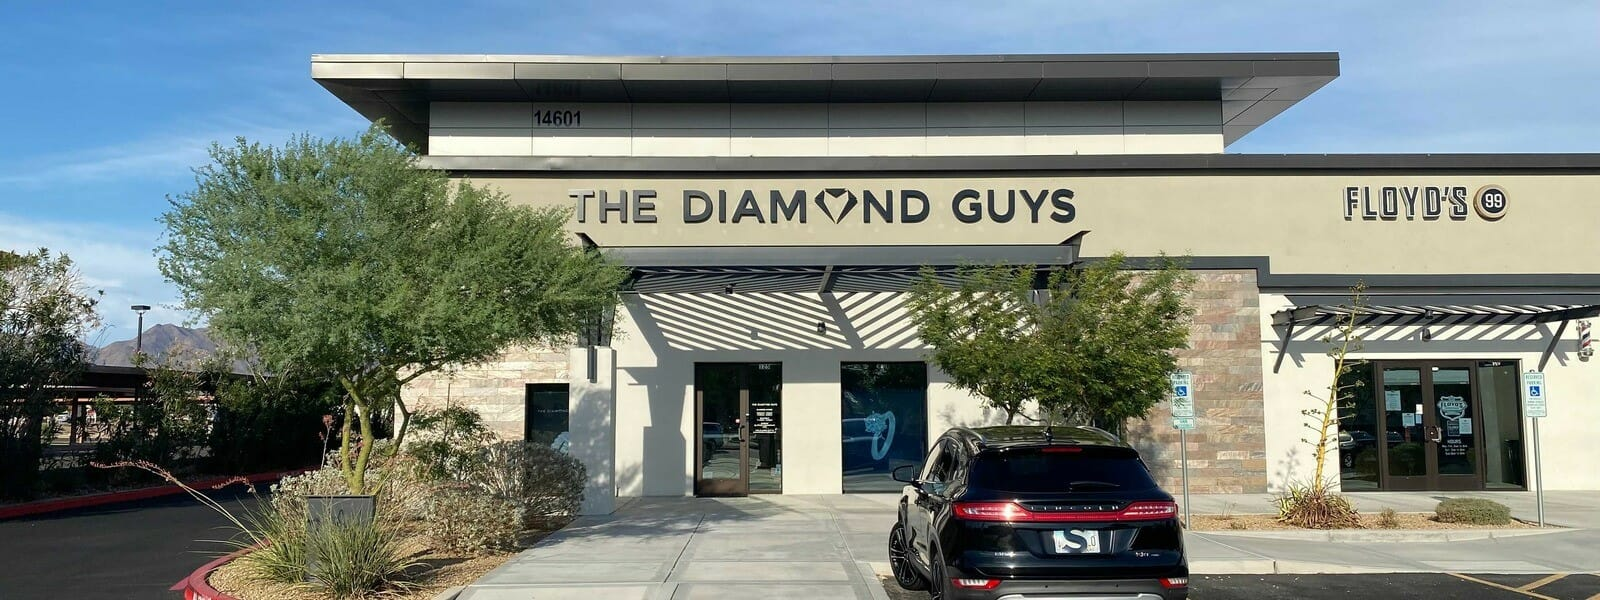 About The Diamond Guys